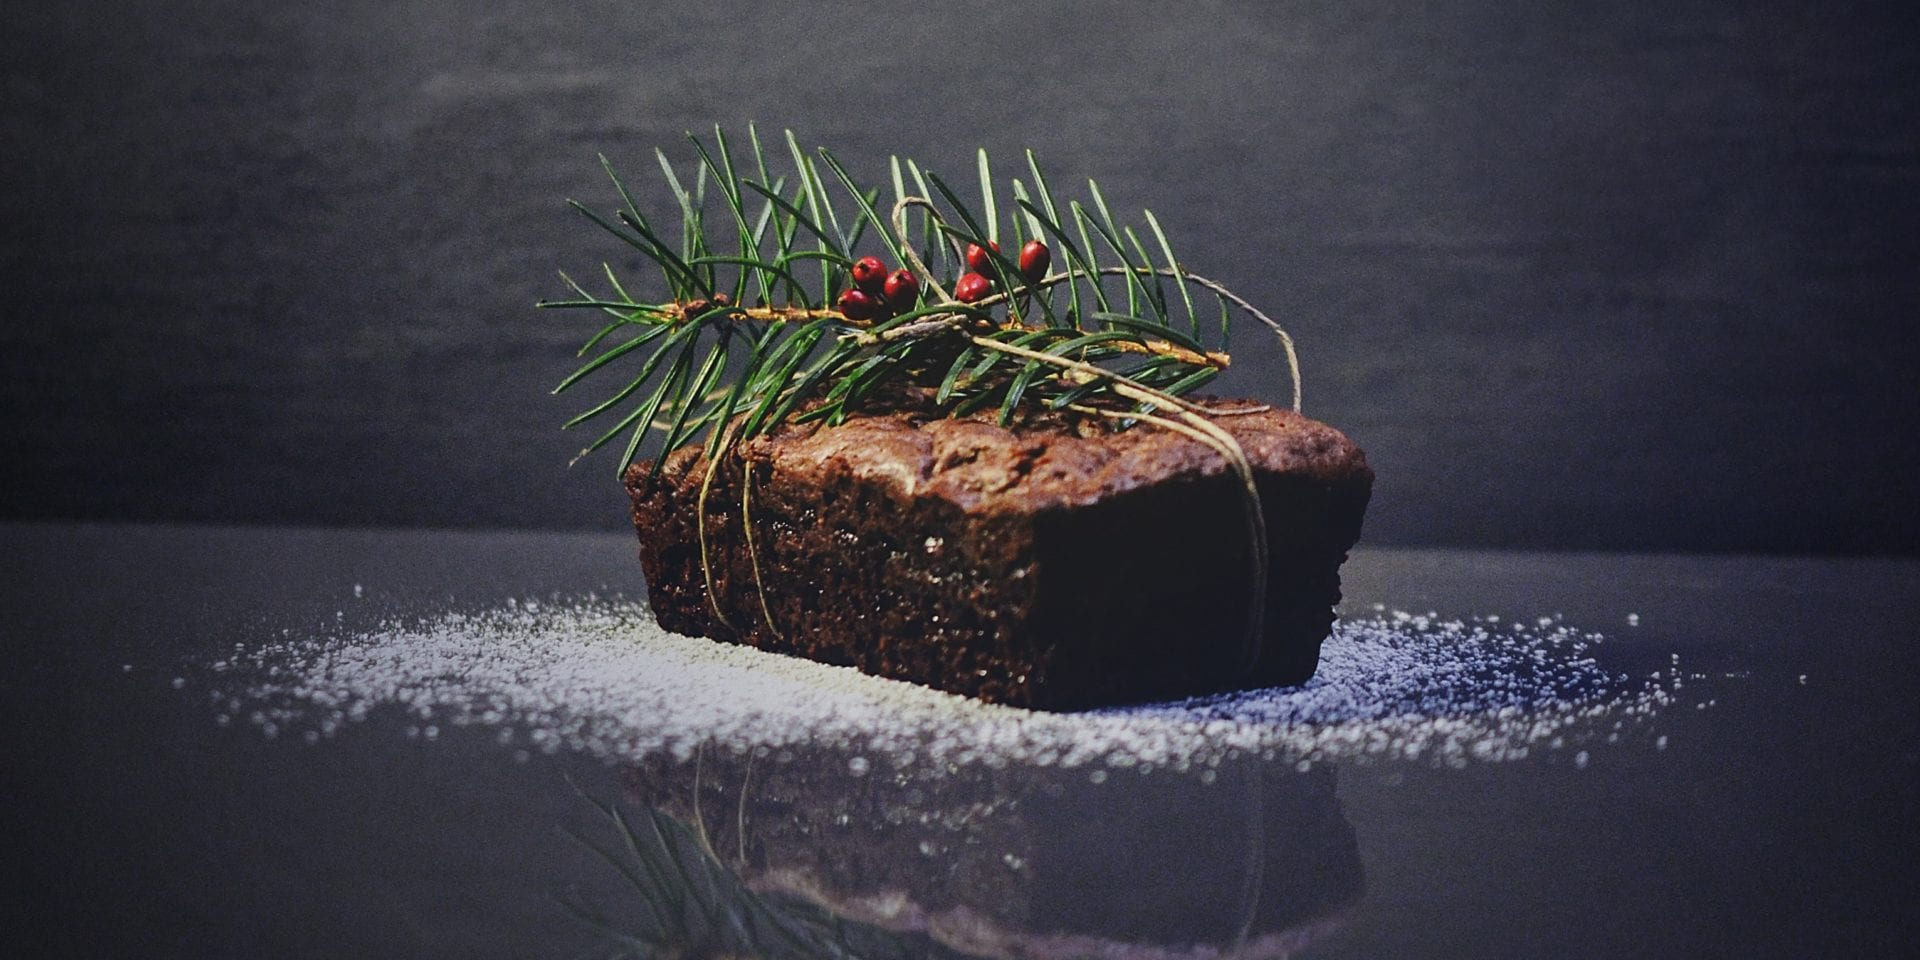 festive food: a christmas fruit loaf with a sprig of holly on top